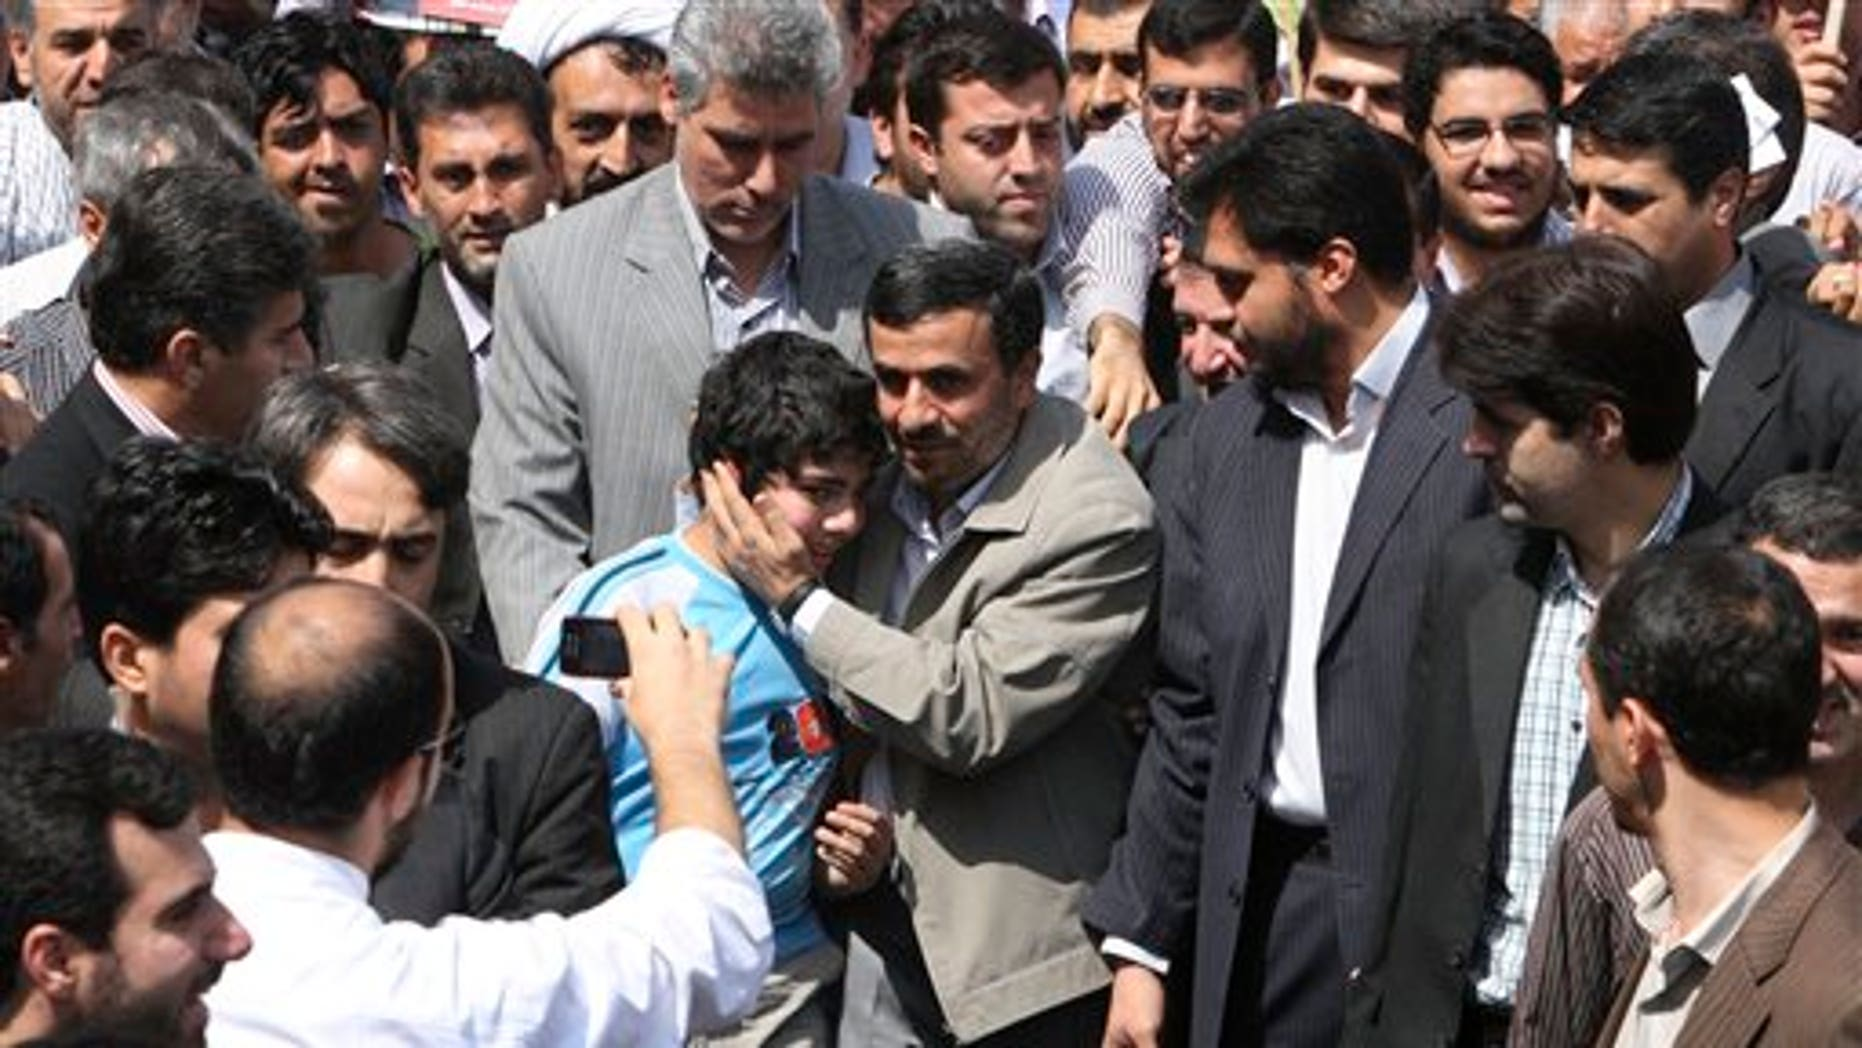 August 26: Escorted by his bodyguards, Iranian President Mahmoud Ahmadinejad, center, greets a boy, as he attends an annual nation-wide pro-Palestinian rally known as Quds Day, in Tehran, Iran.